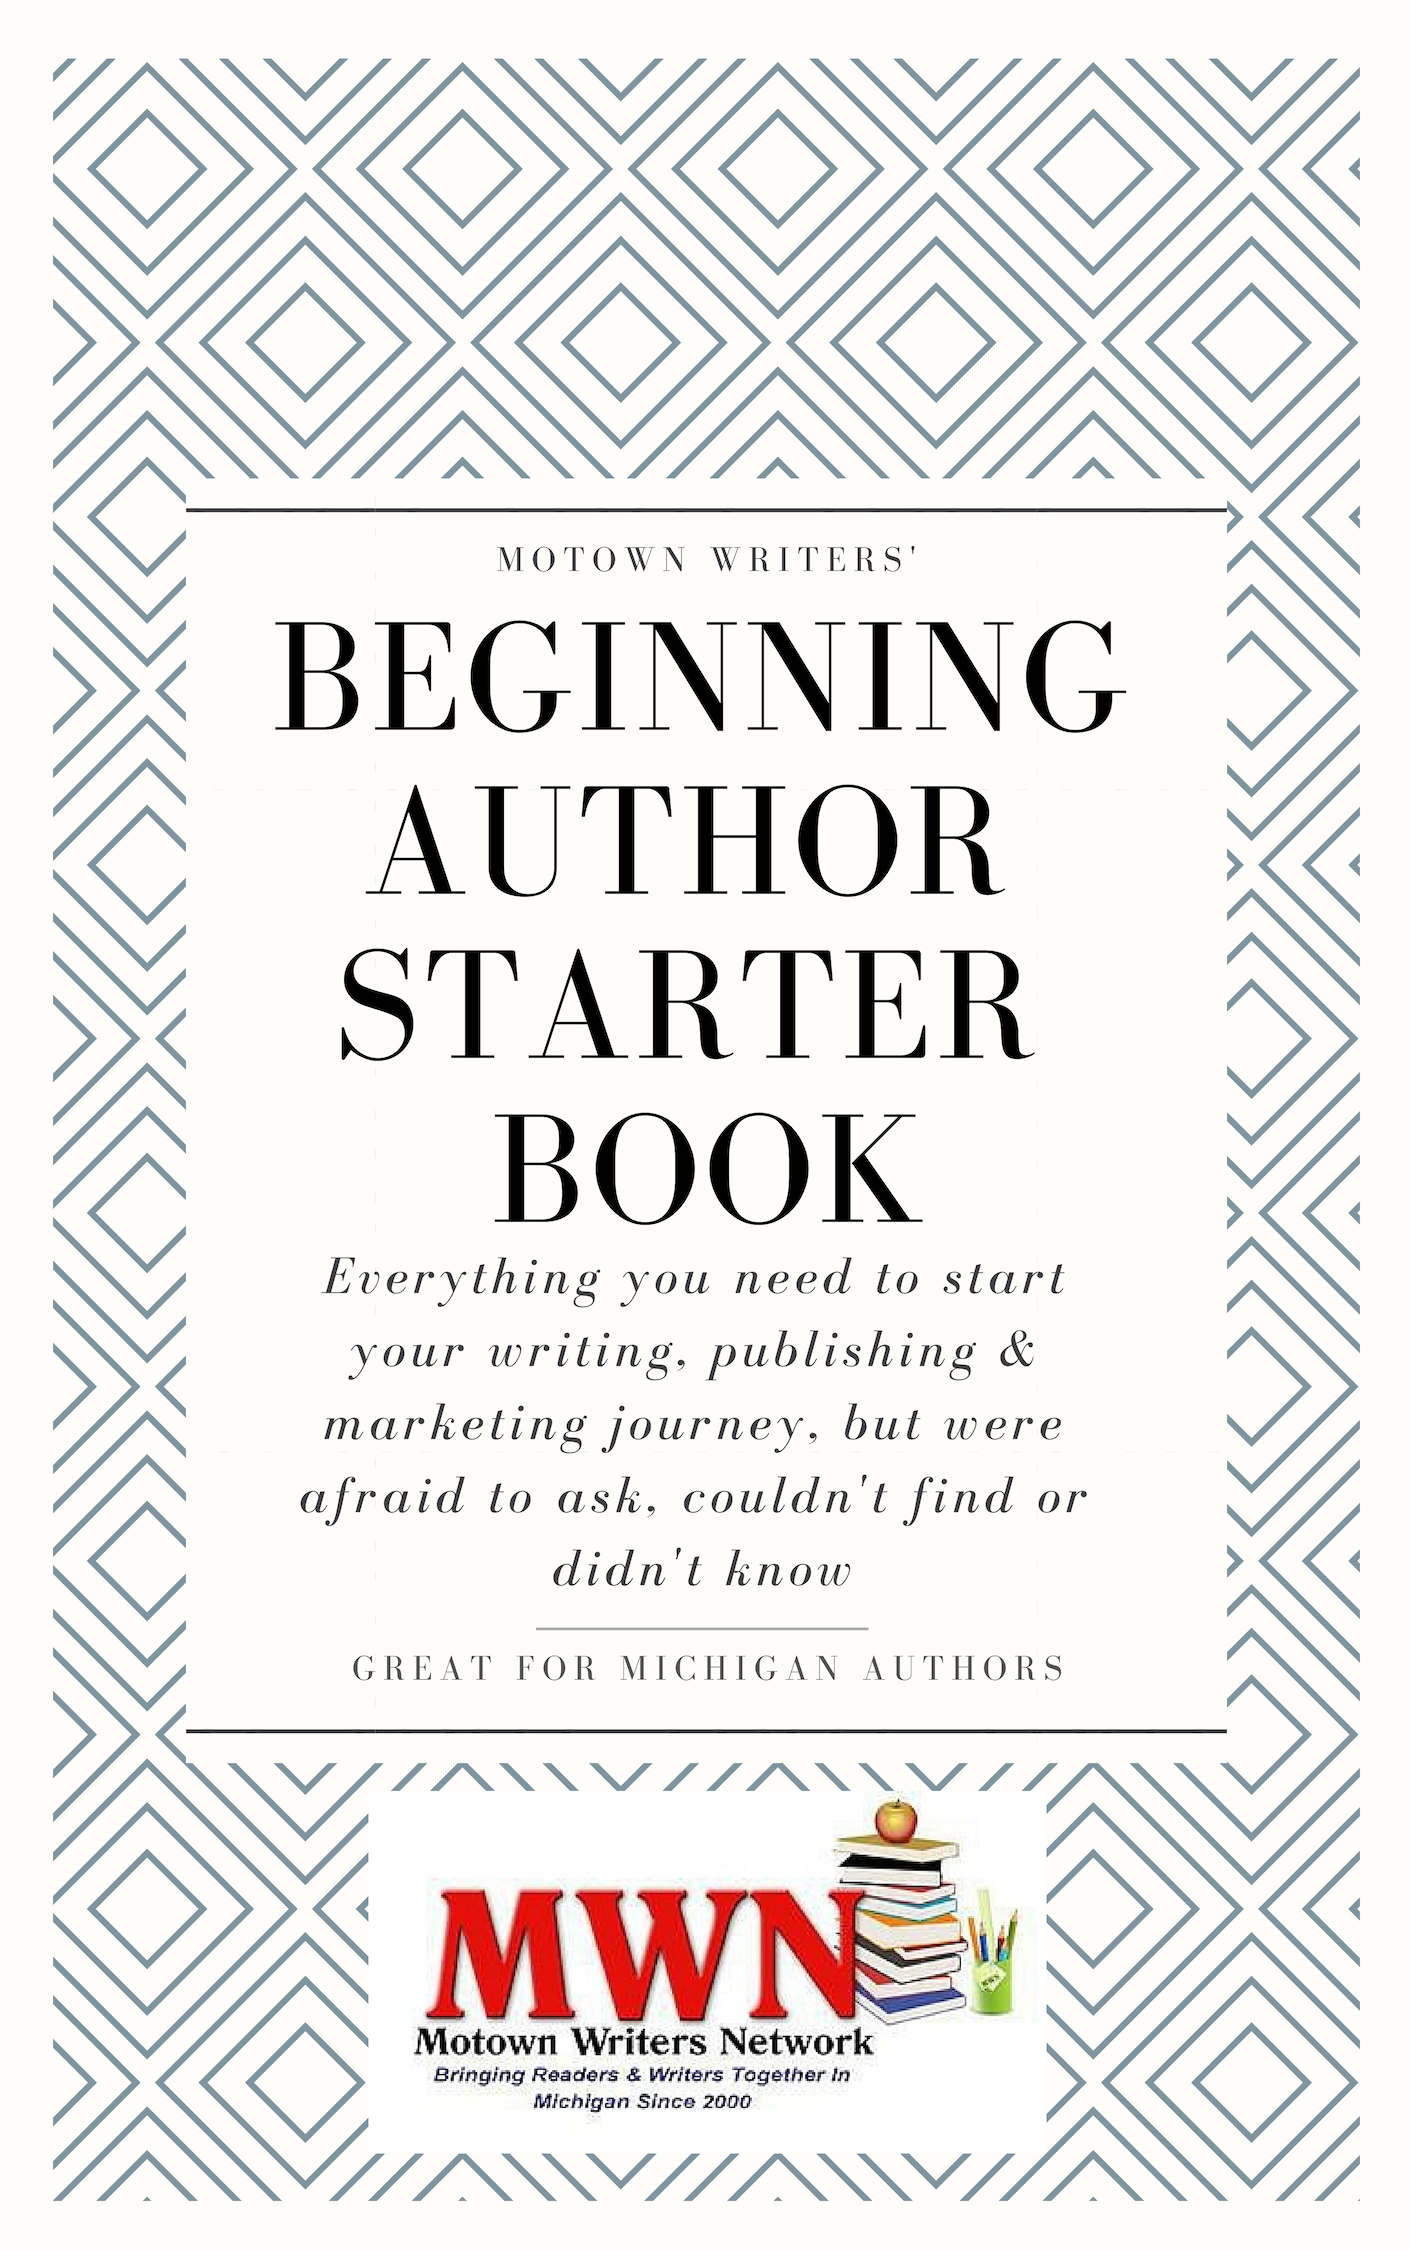 Grab your #Michigan Author Starter Book today $20 Everything you need to start your writing publishing and marketing journey, but was afraid to ask #motownwriters #michiganwriters